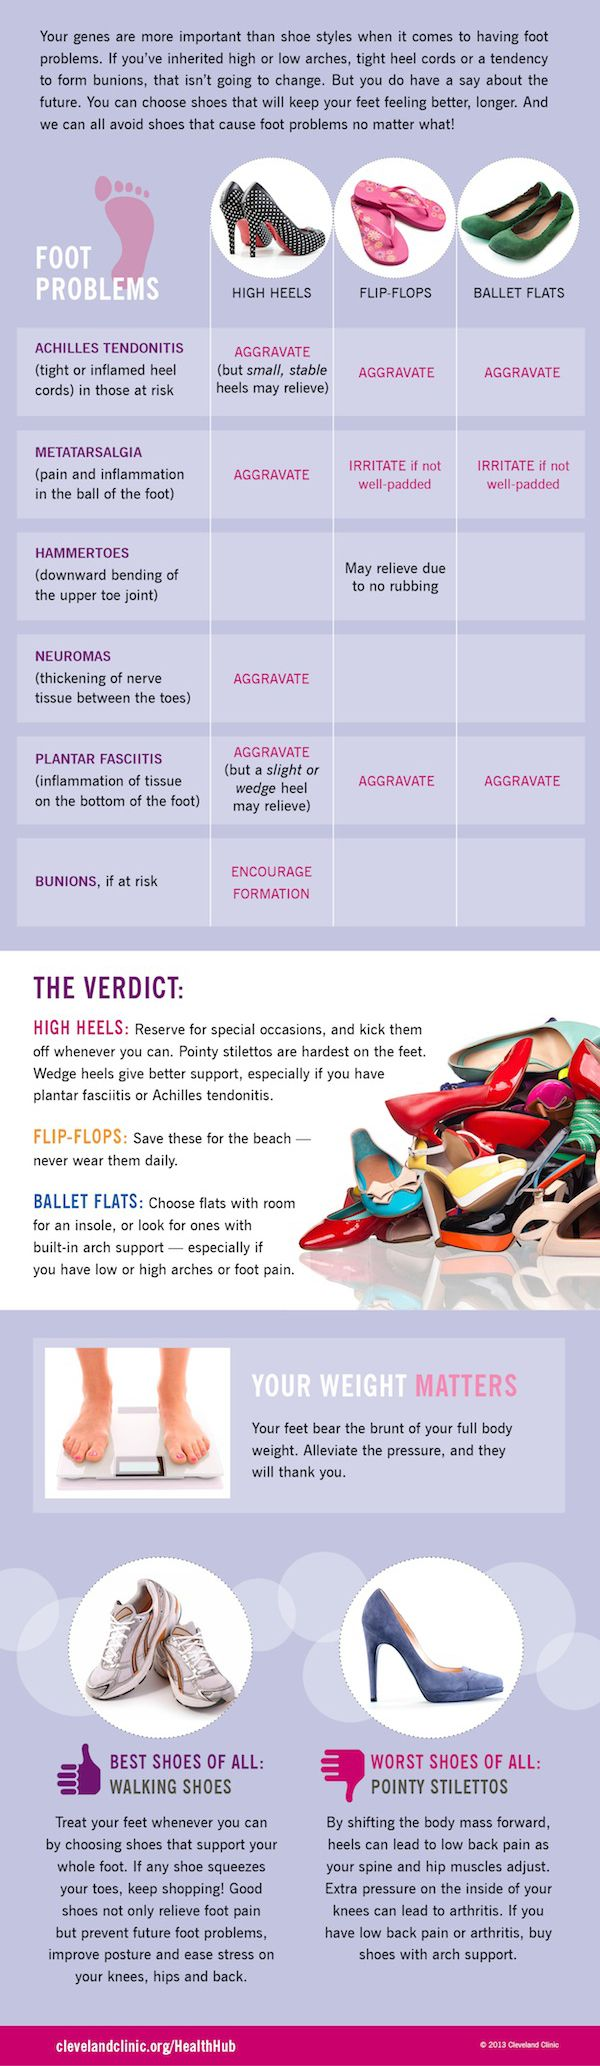 Flats and flip-flops can hurt your feet, too - Vox